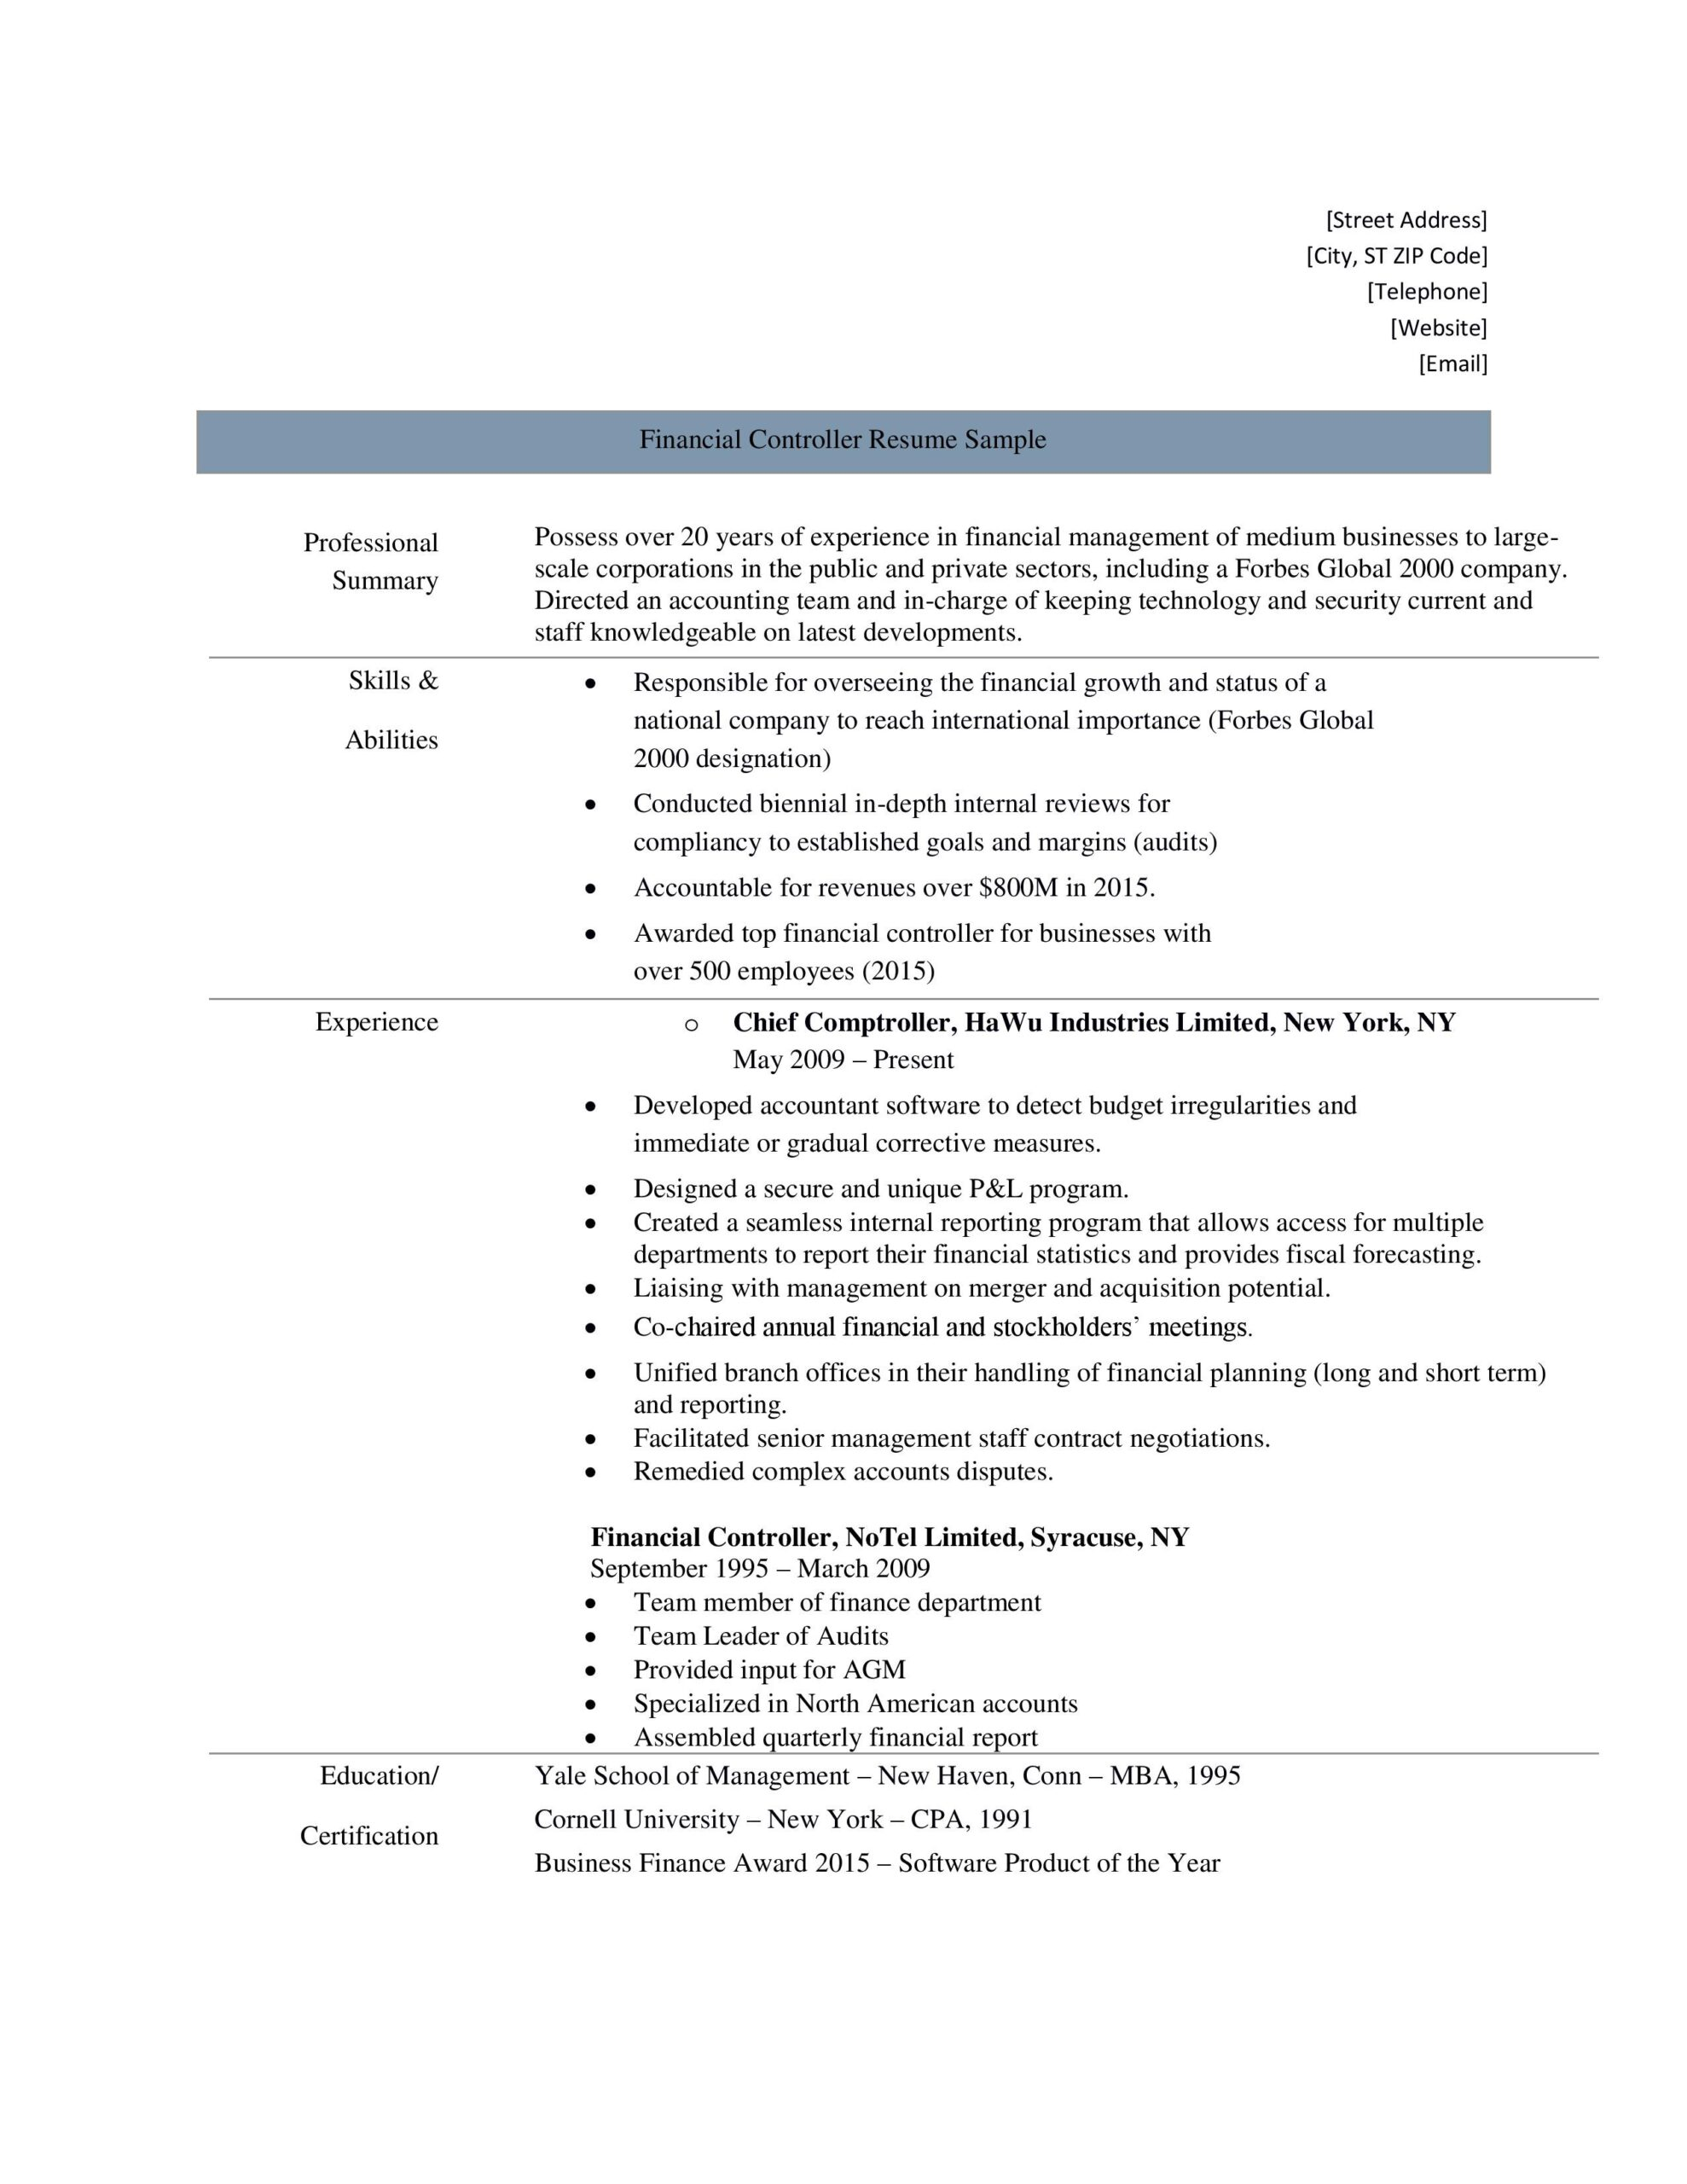 financial controller resume samples and tips by builders medium summary iw4px2knc2cjkecy Resume Financial Controller Resume Summary